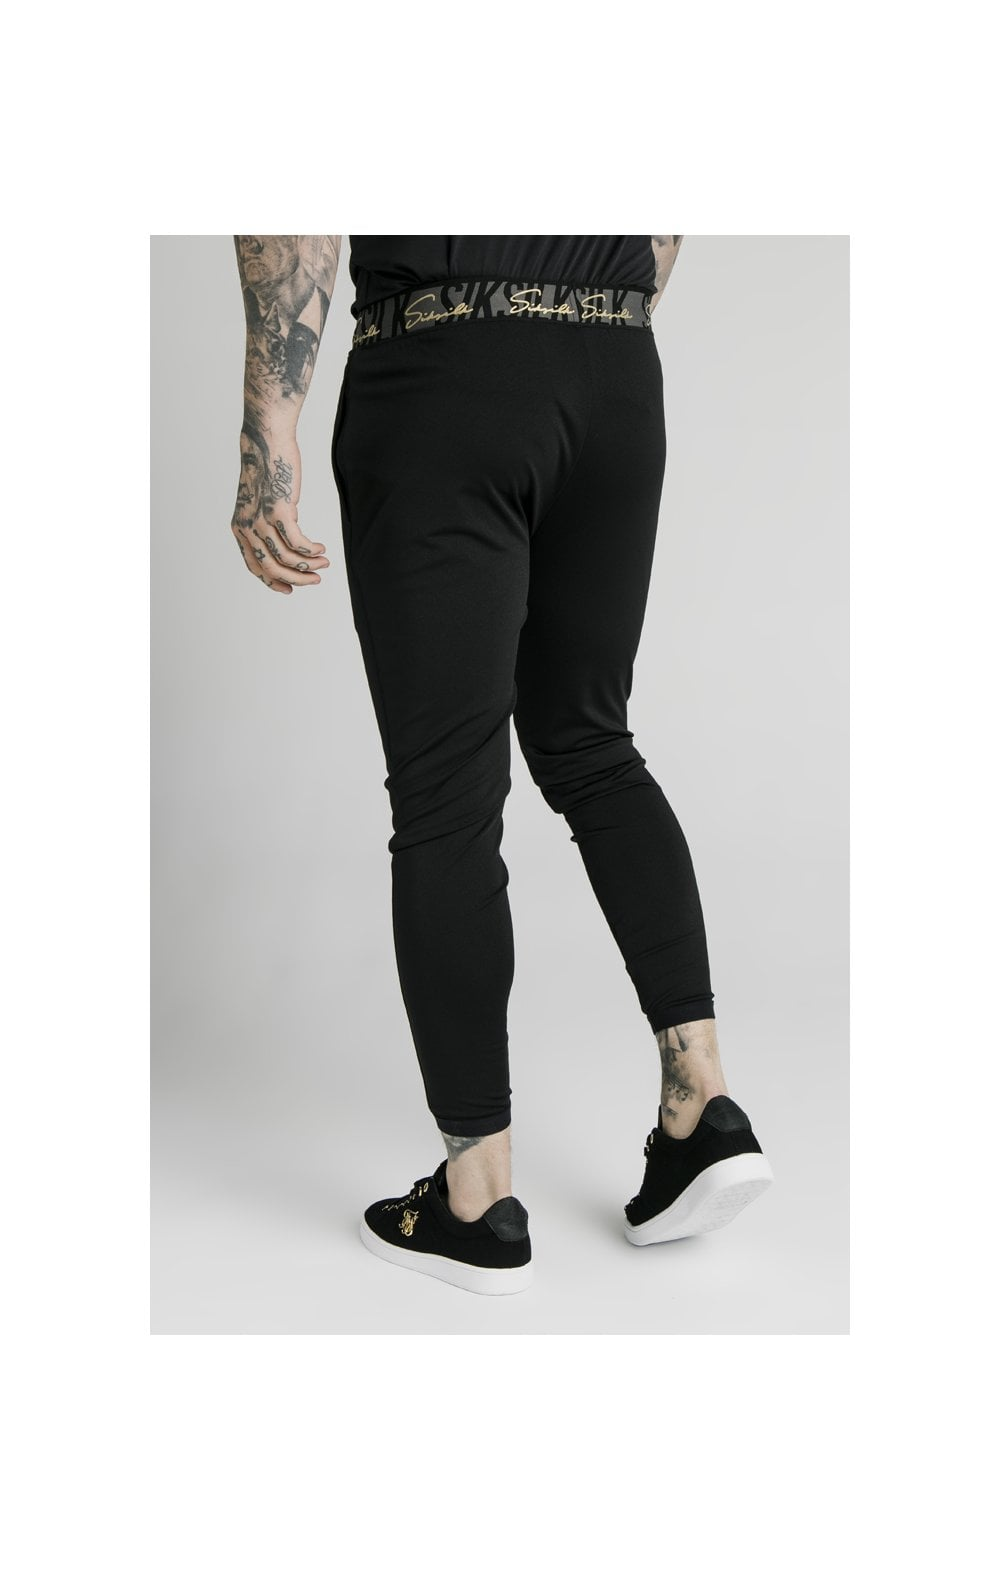 SikSilk Scope Tape Track Pant - Black (3)